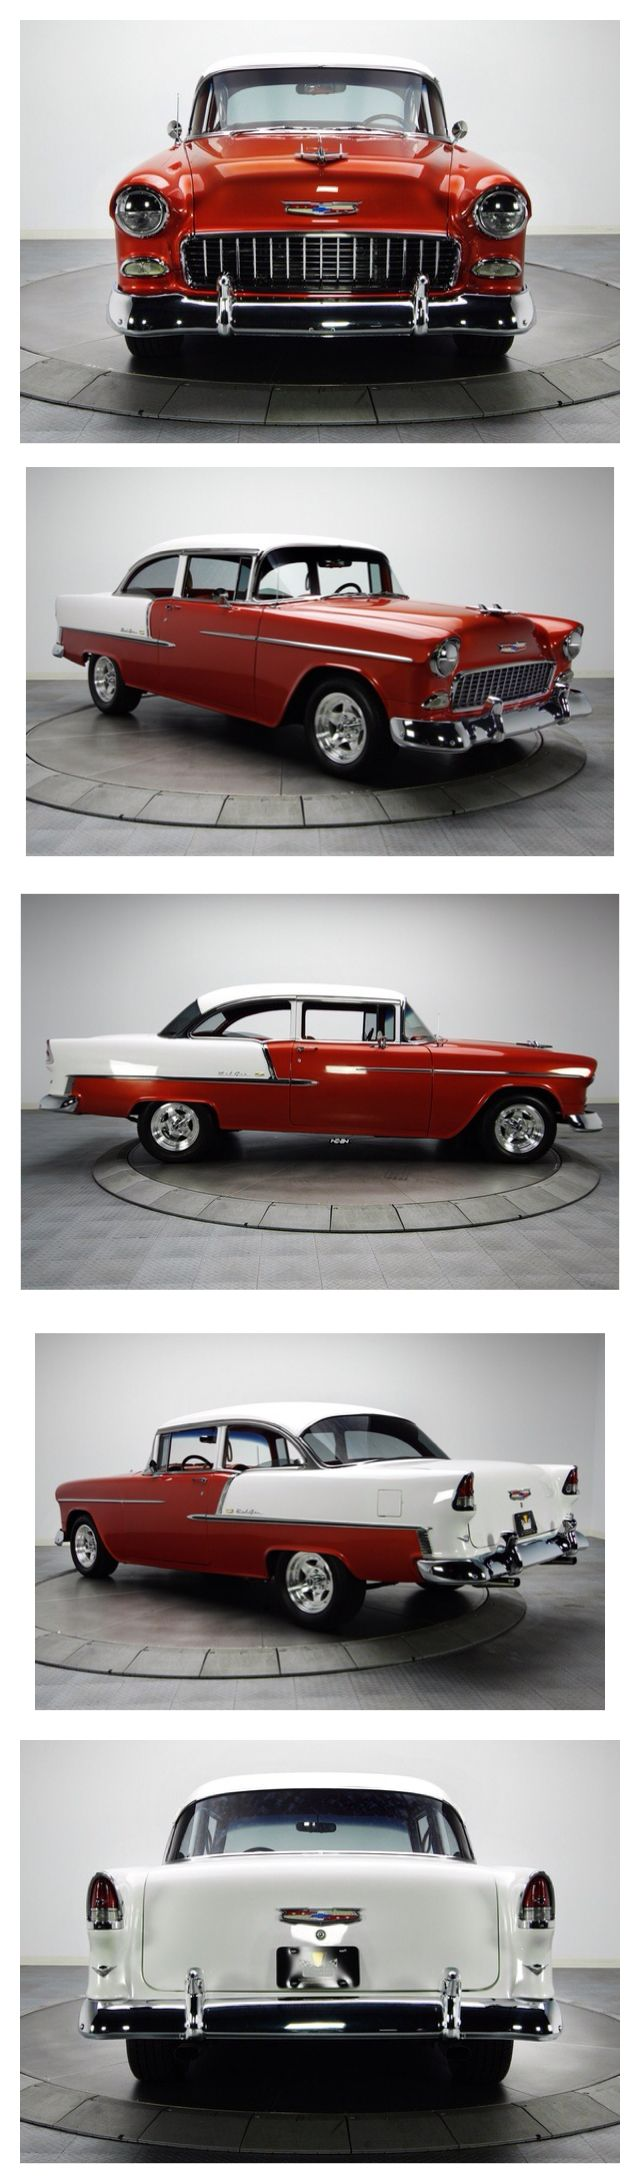 1956 bel air for sale submited images - 1955 Chevy Belair